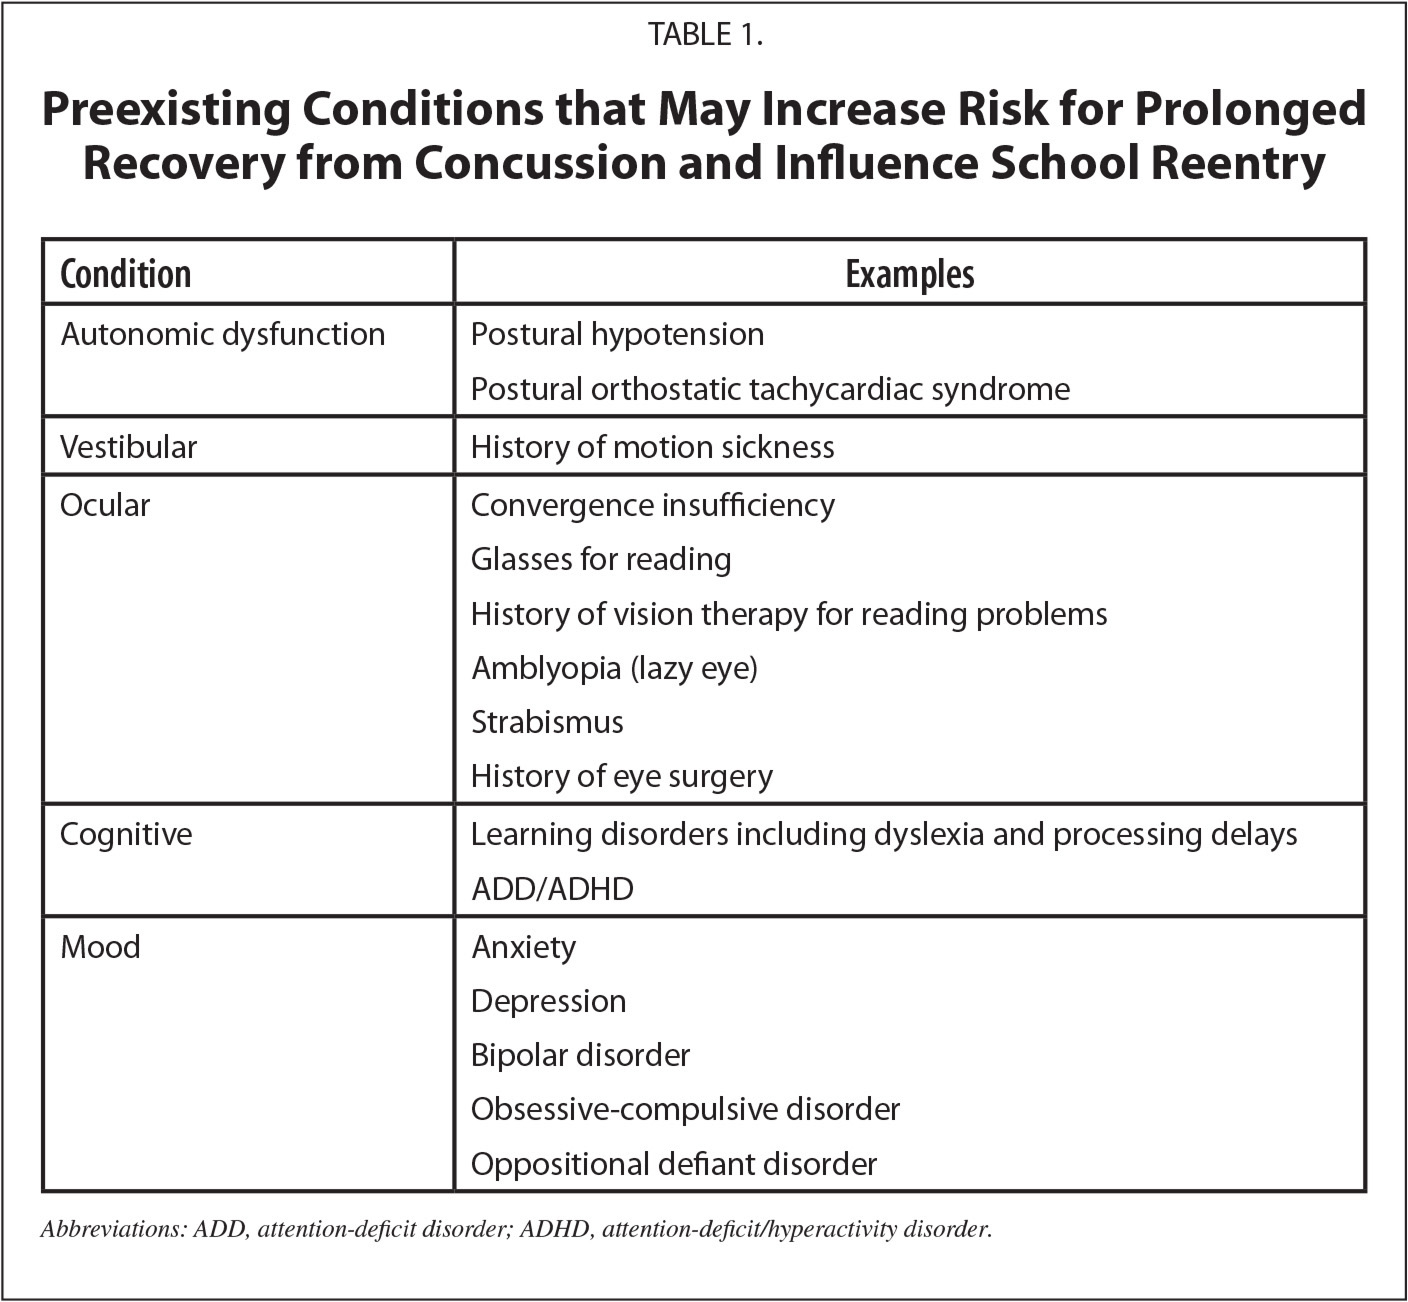 Preexisting Conditions that May Increase Risk for Prolonged Recovery from Concussion and Influence School Reentry